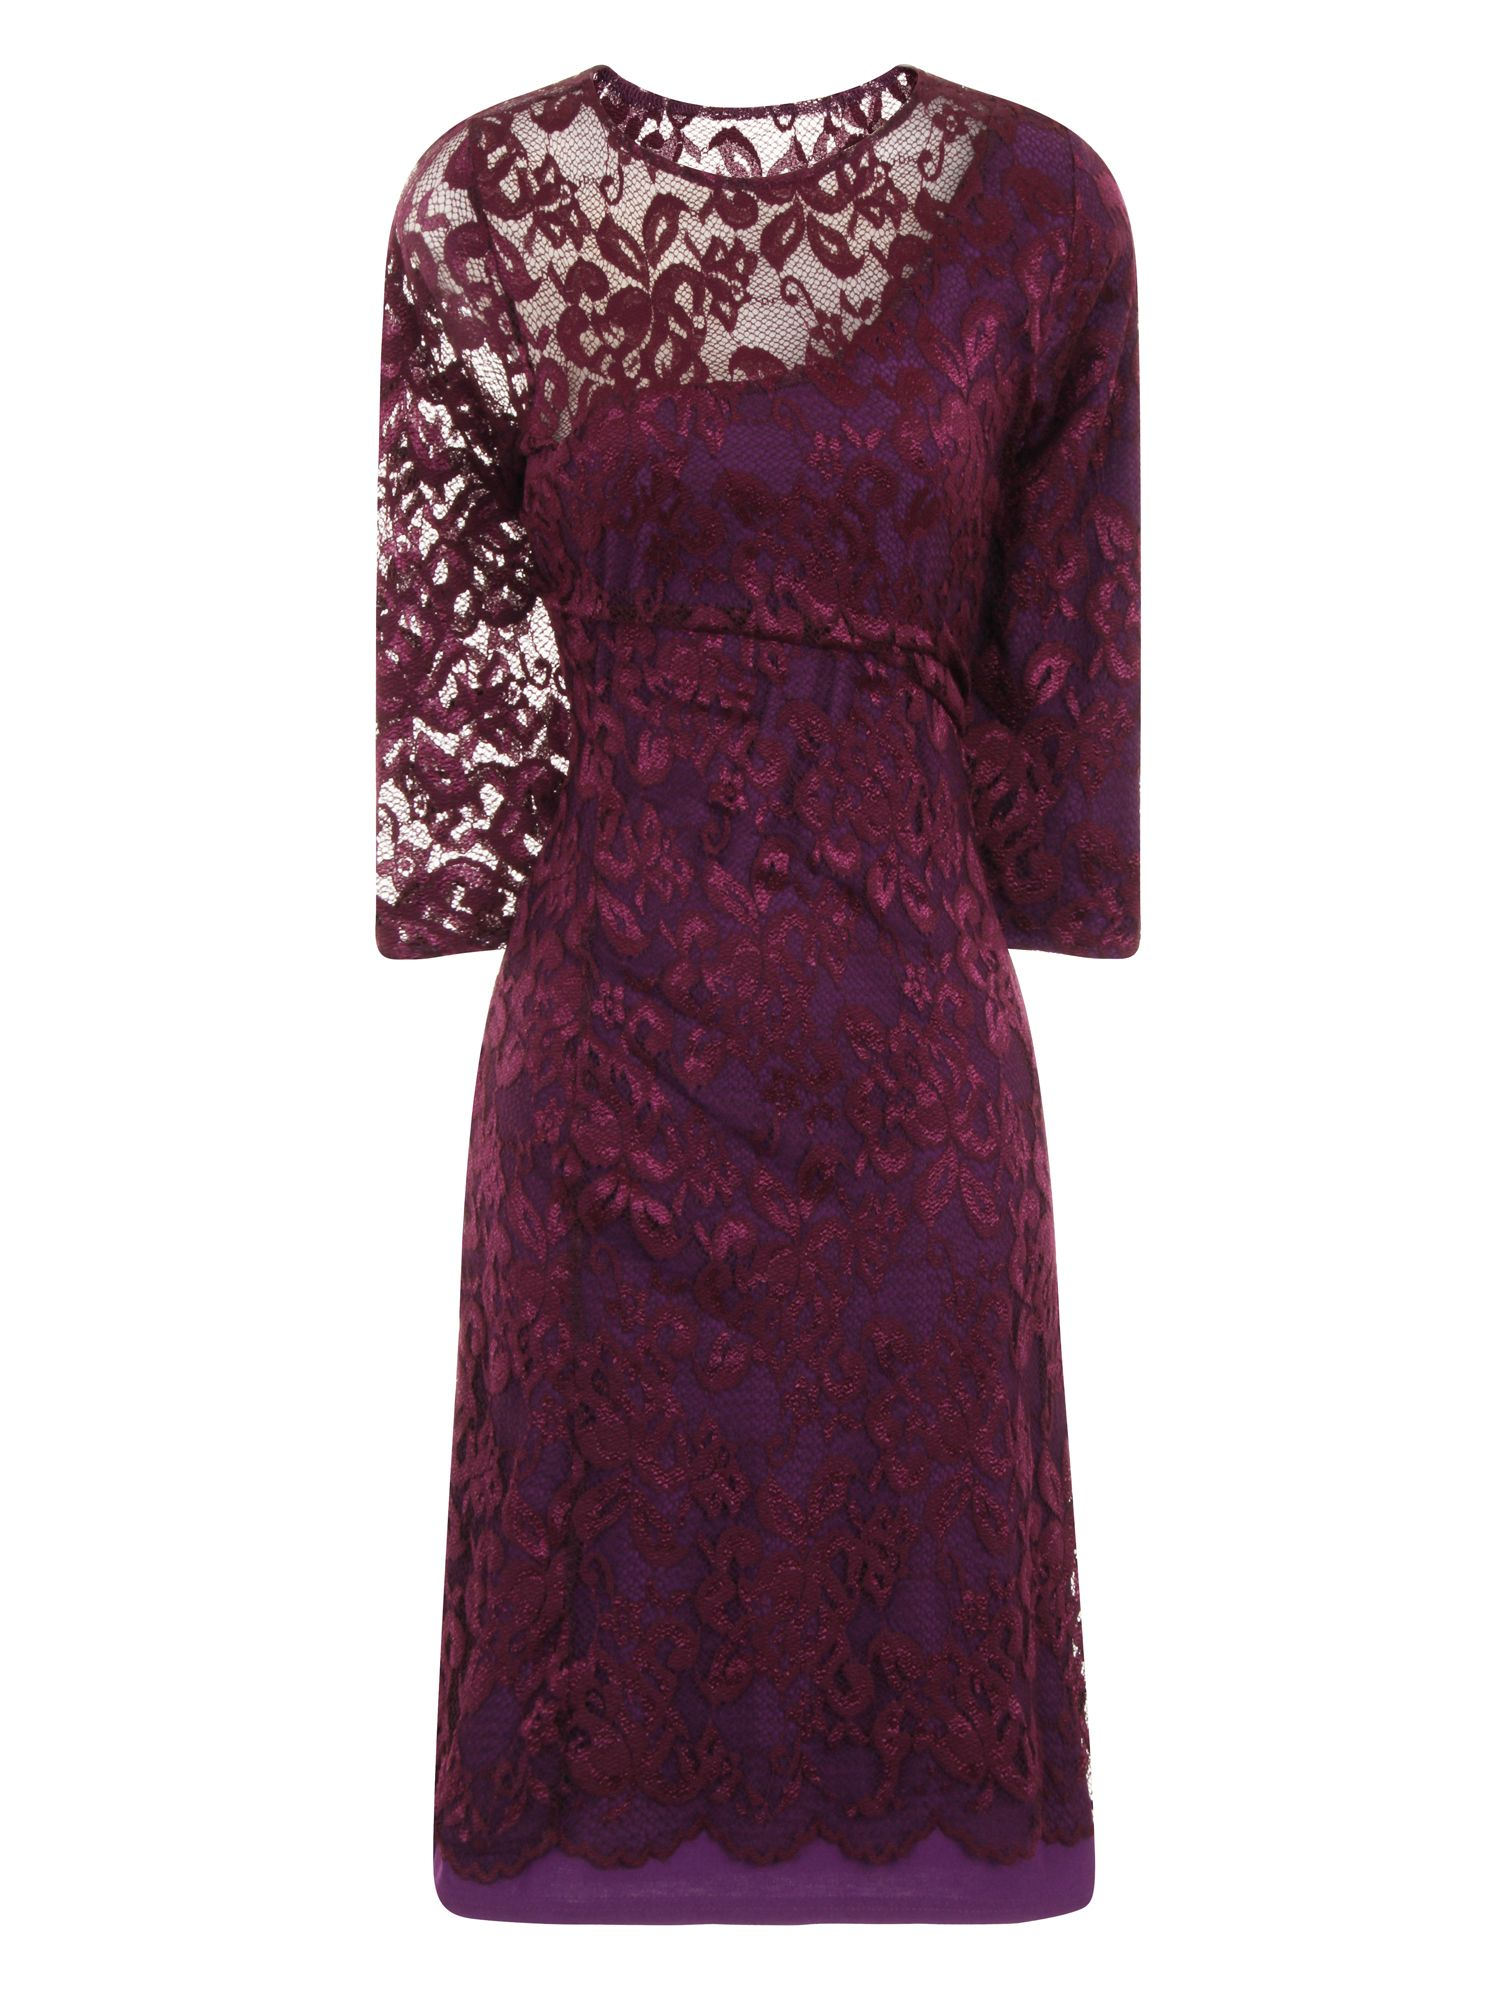 HotSquash One-Sleeved Lace Dress in Clever Fabric, Purple